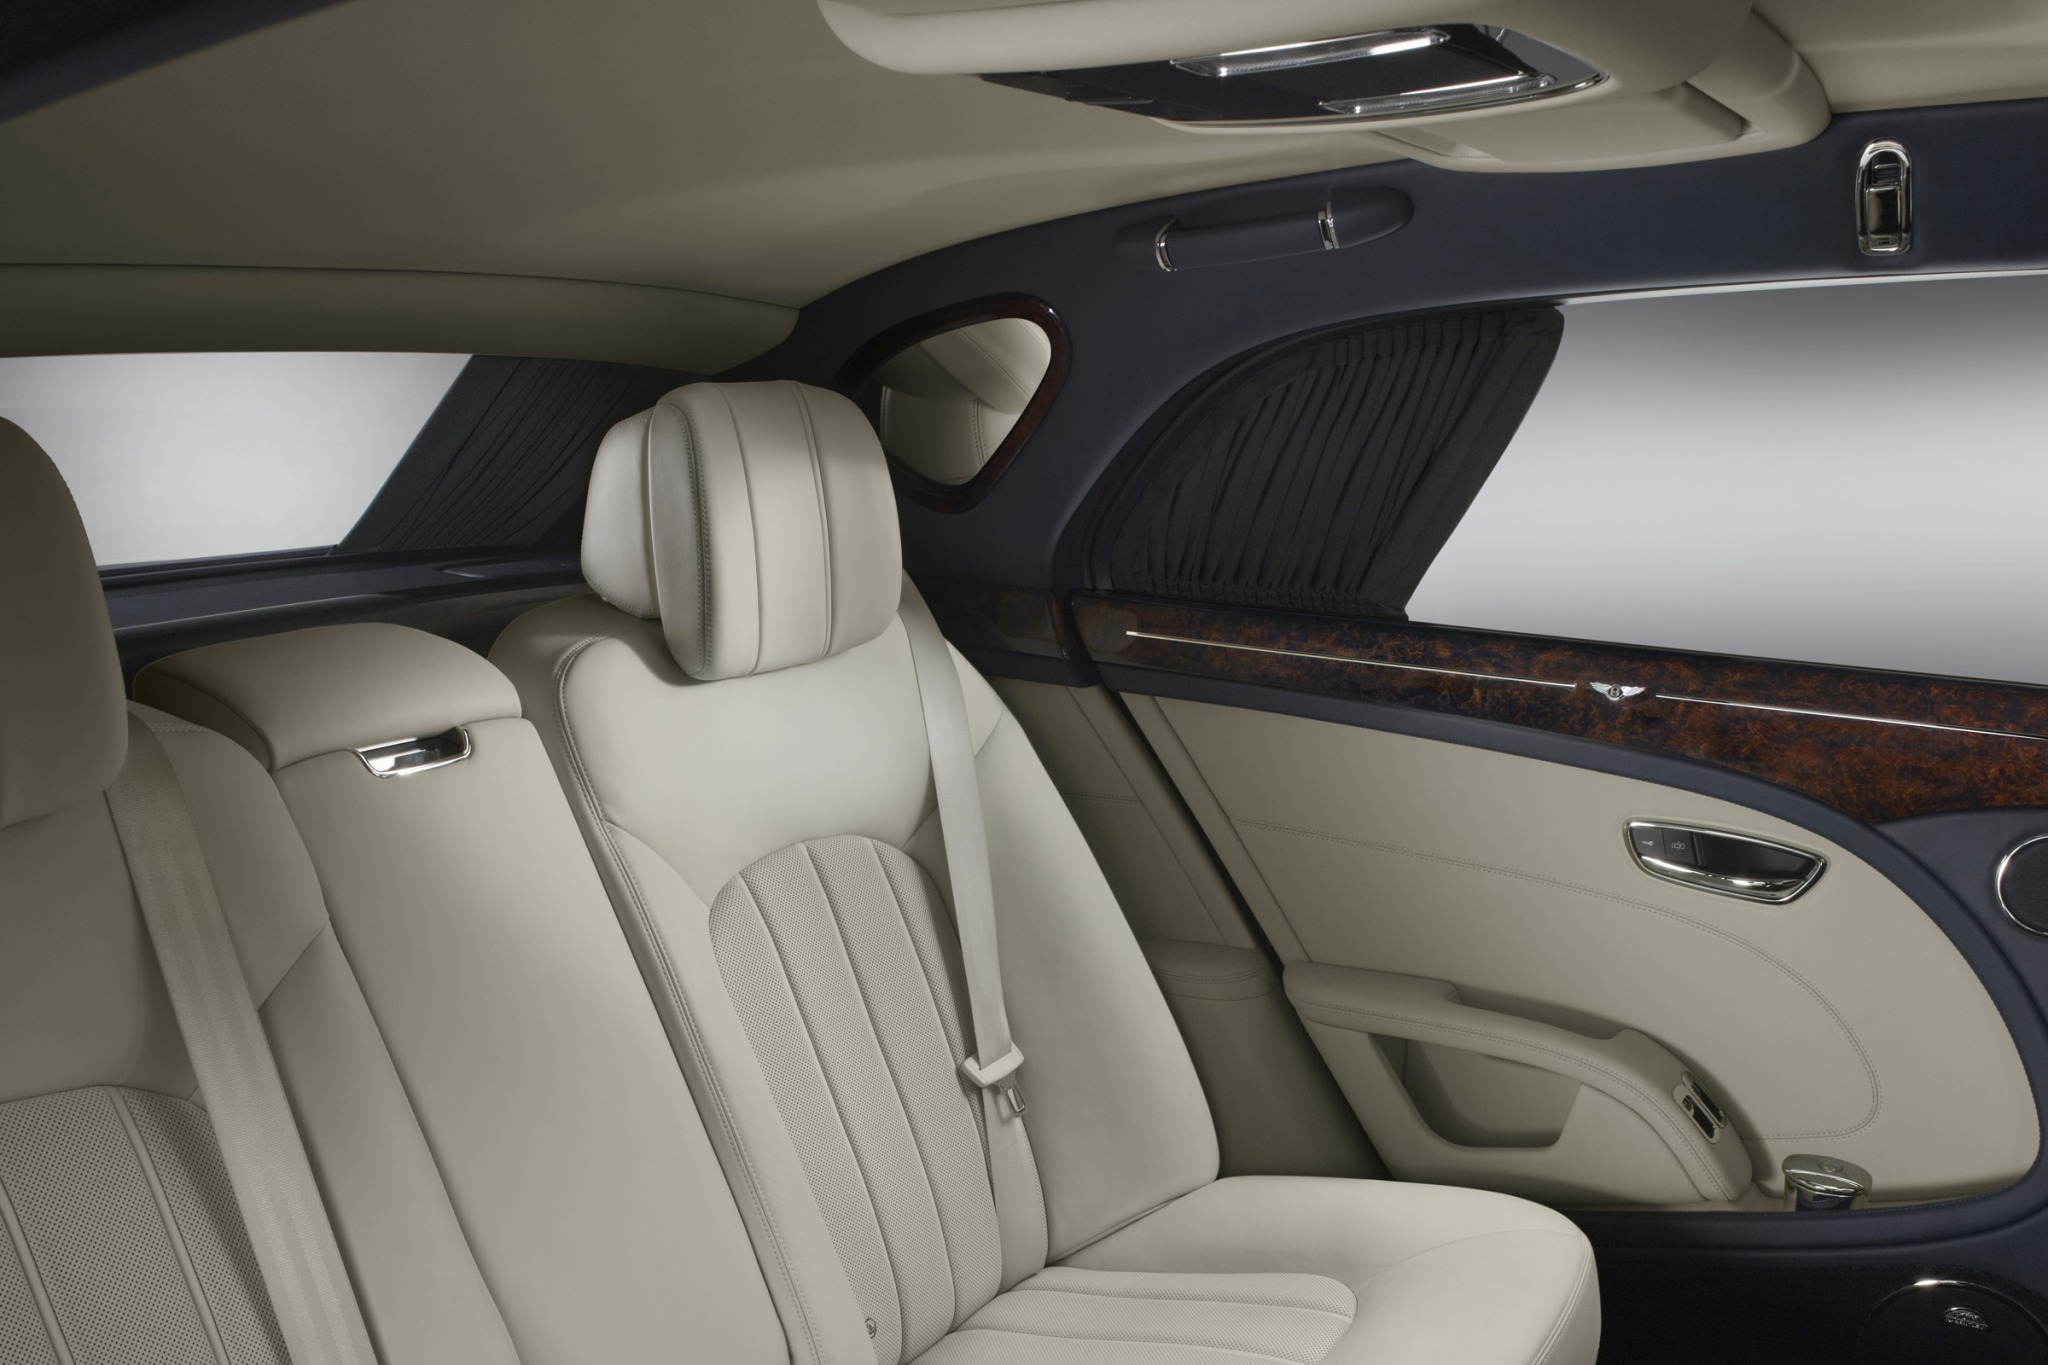 2013 Bentley Mulsanne Sed interior #9